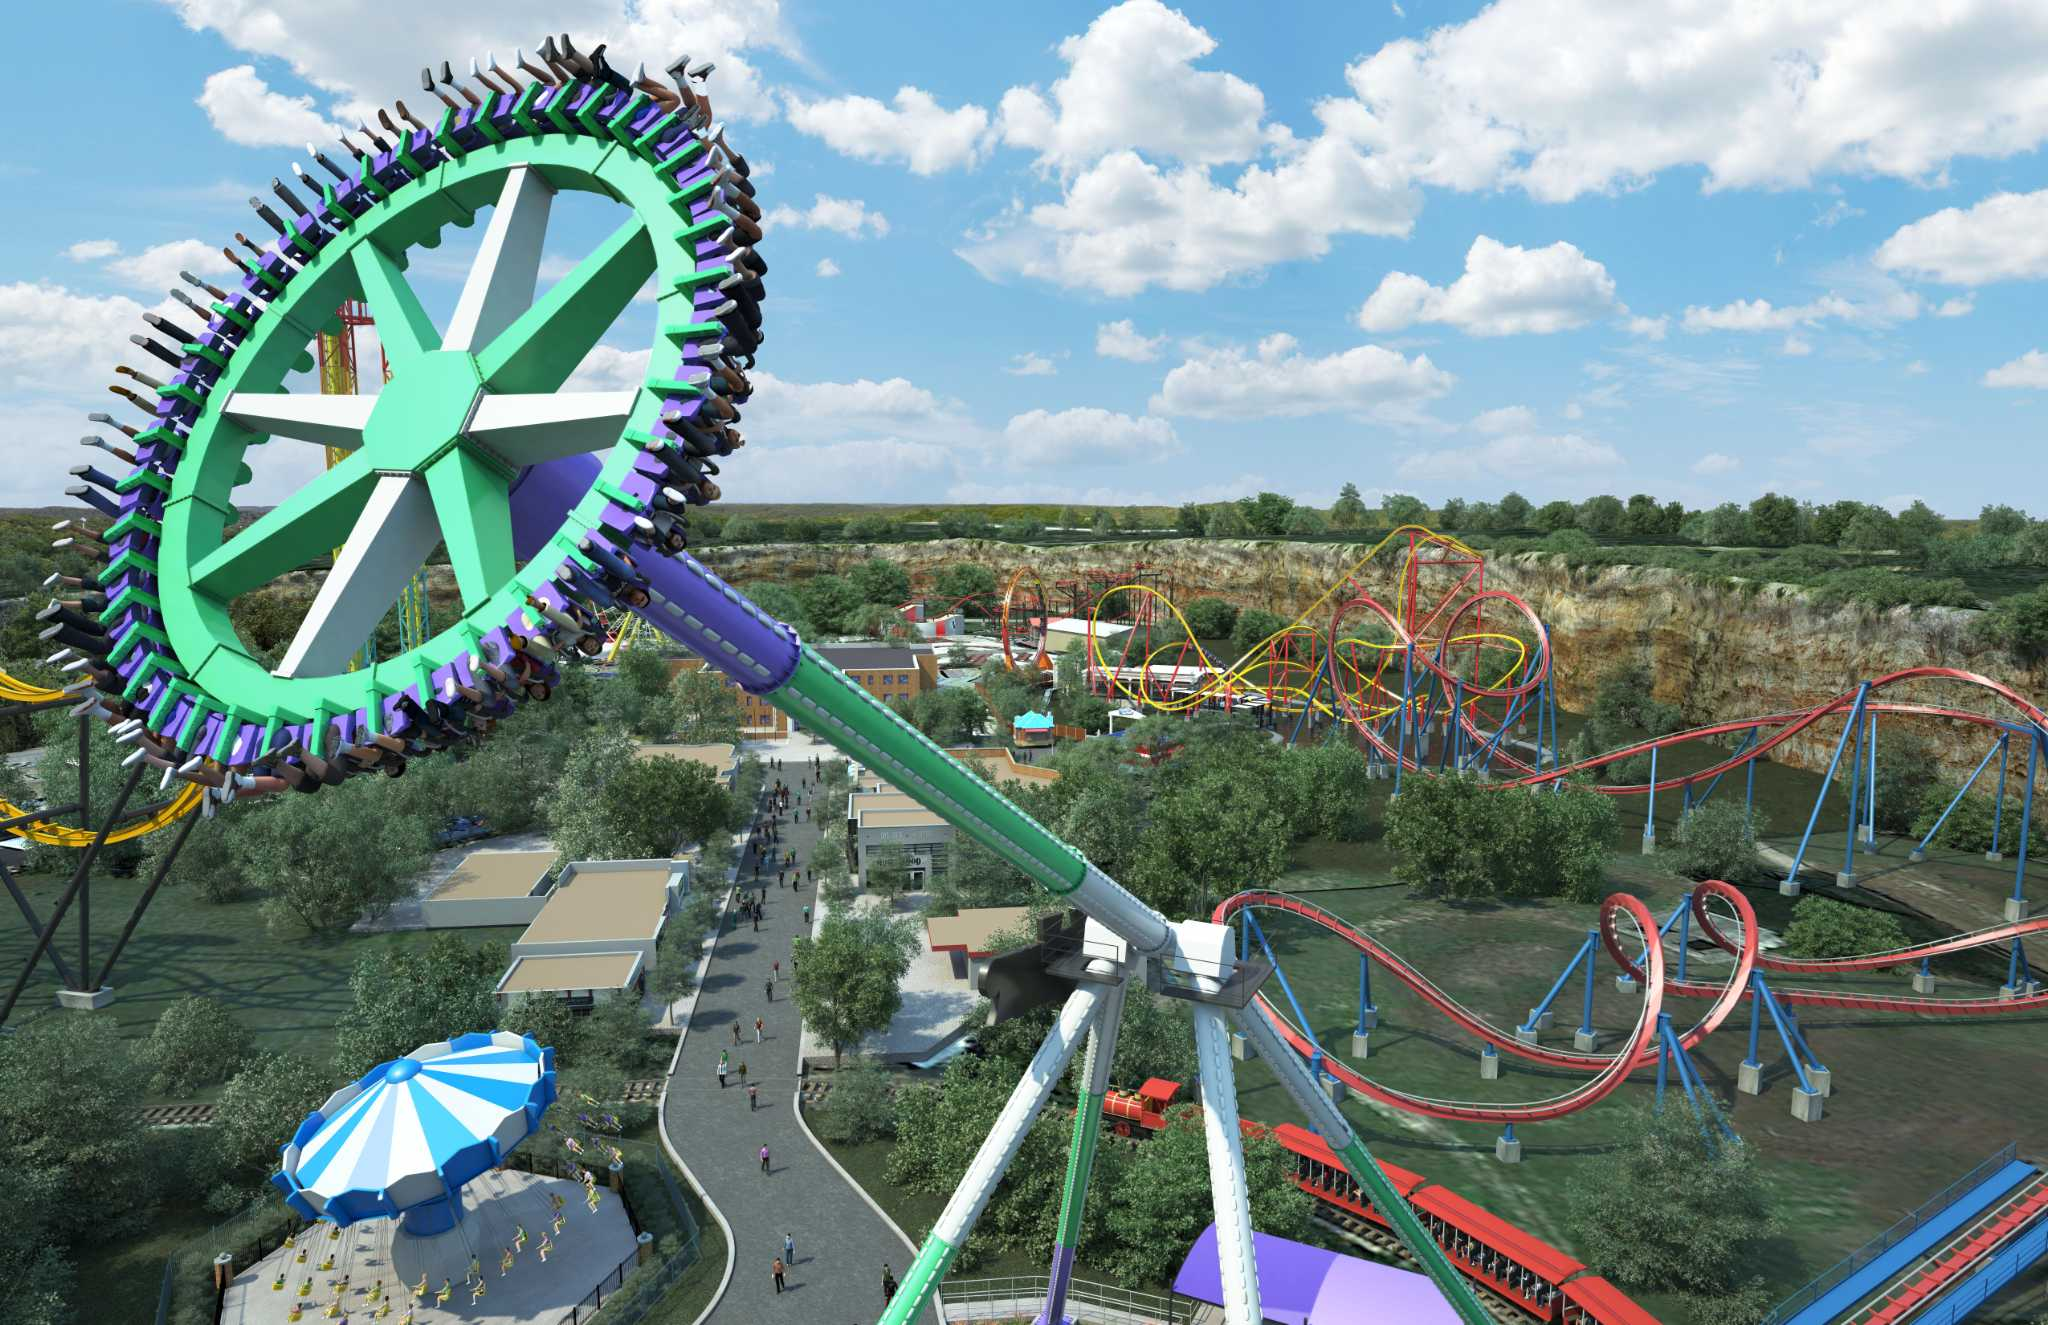 Six Flags Fiesta Texas To Open Joker Ride In 2019